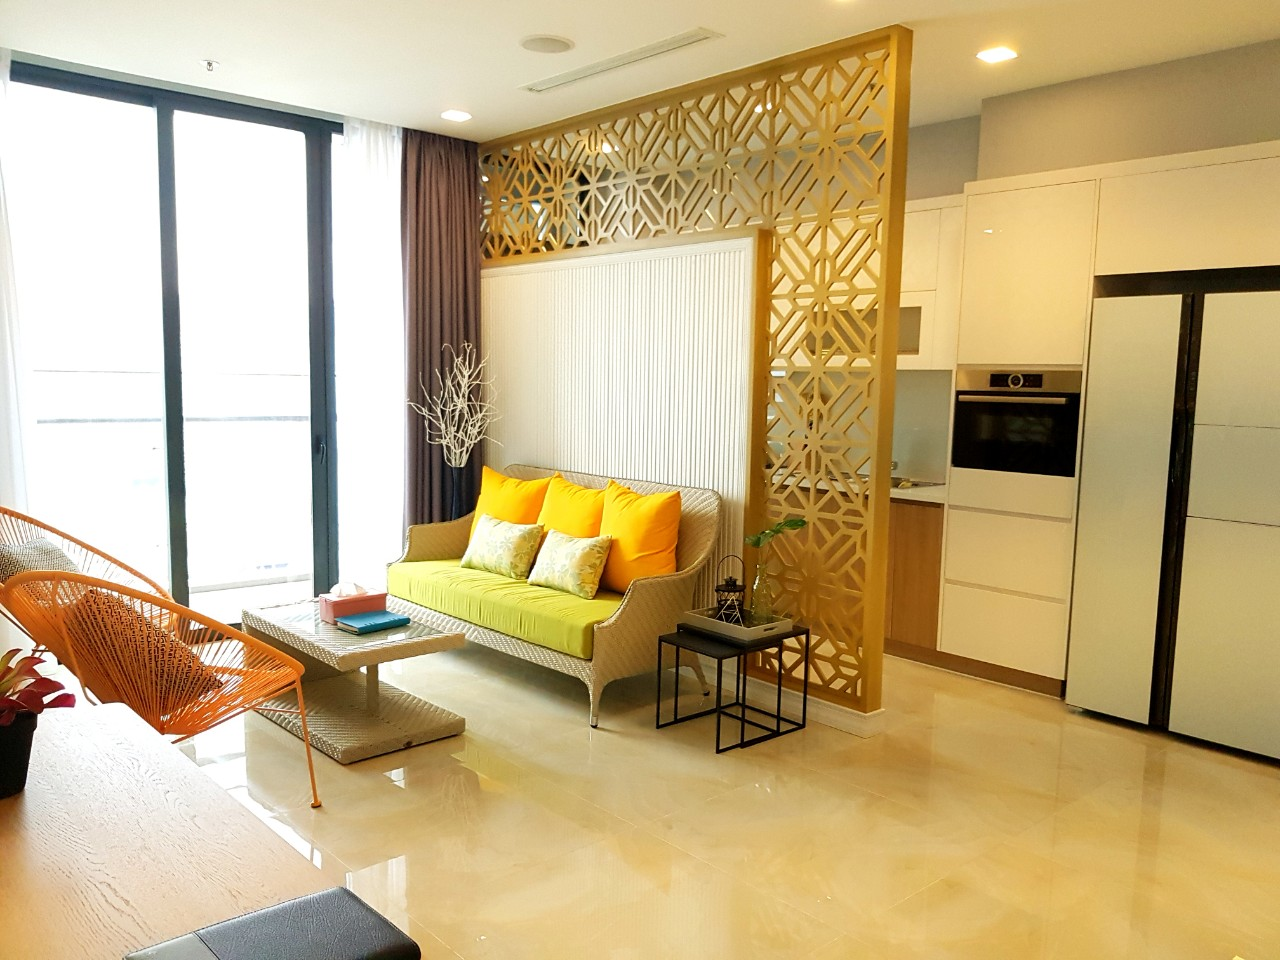 vinhomes golden river apartment for rent in district 1 hcmc D102272 (2)